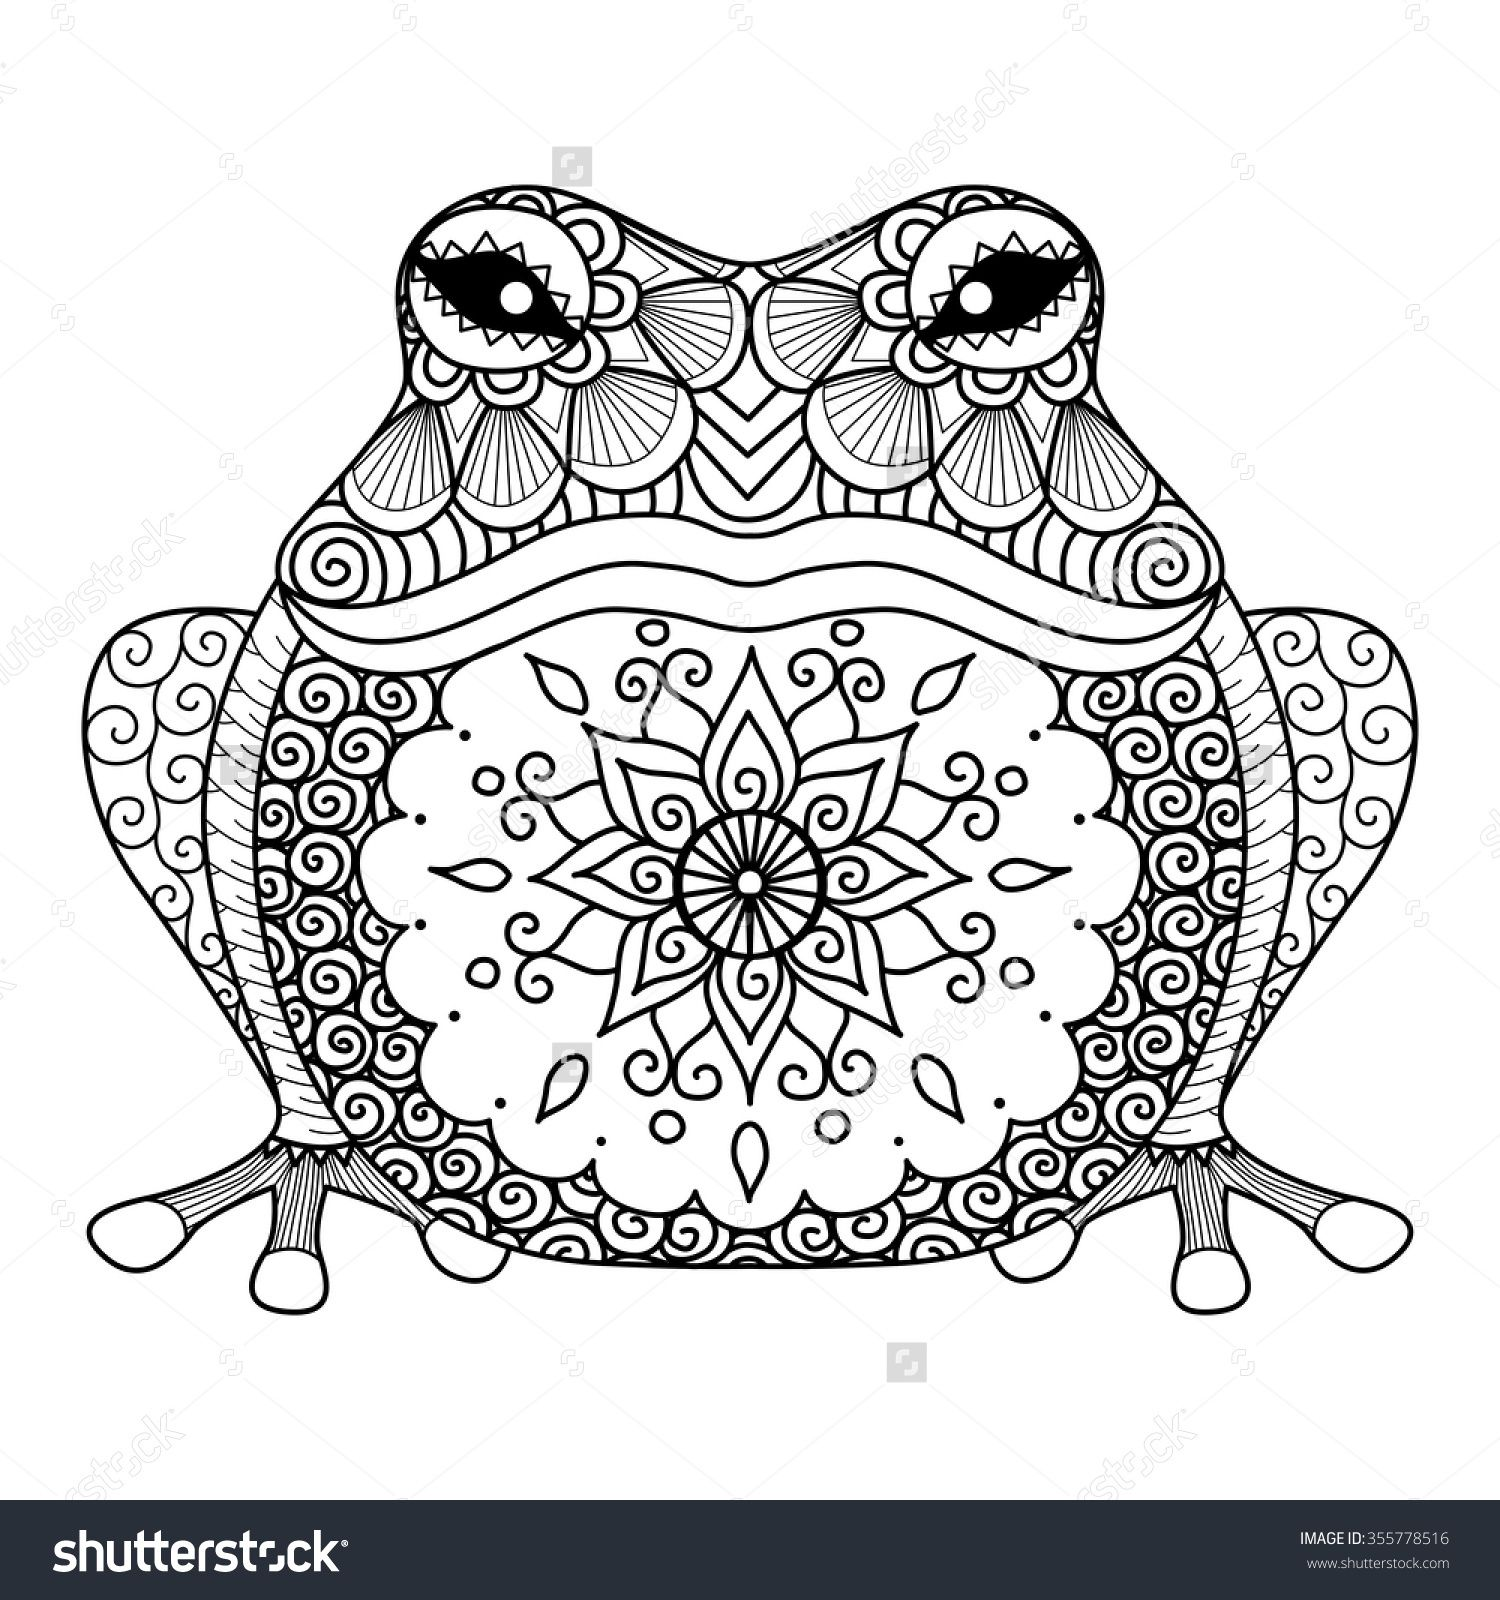 Mandala coloring pages turtles - Hand Drawn Zentangle Frog For Coloring Book For Adult Shirt Design